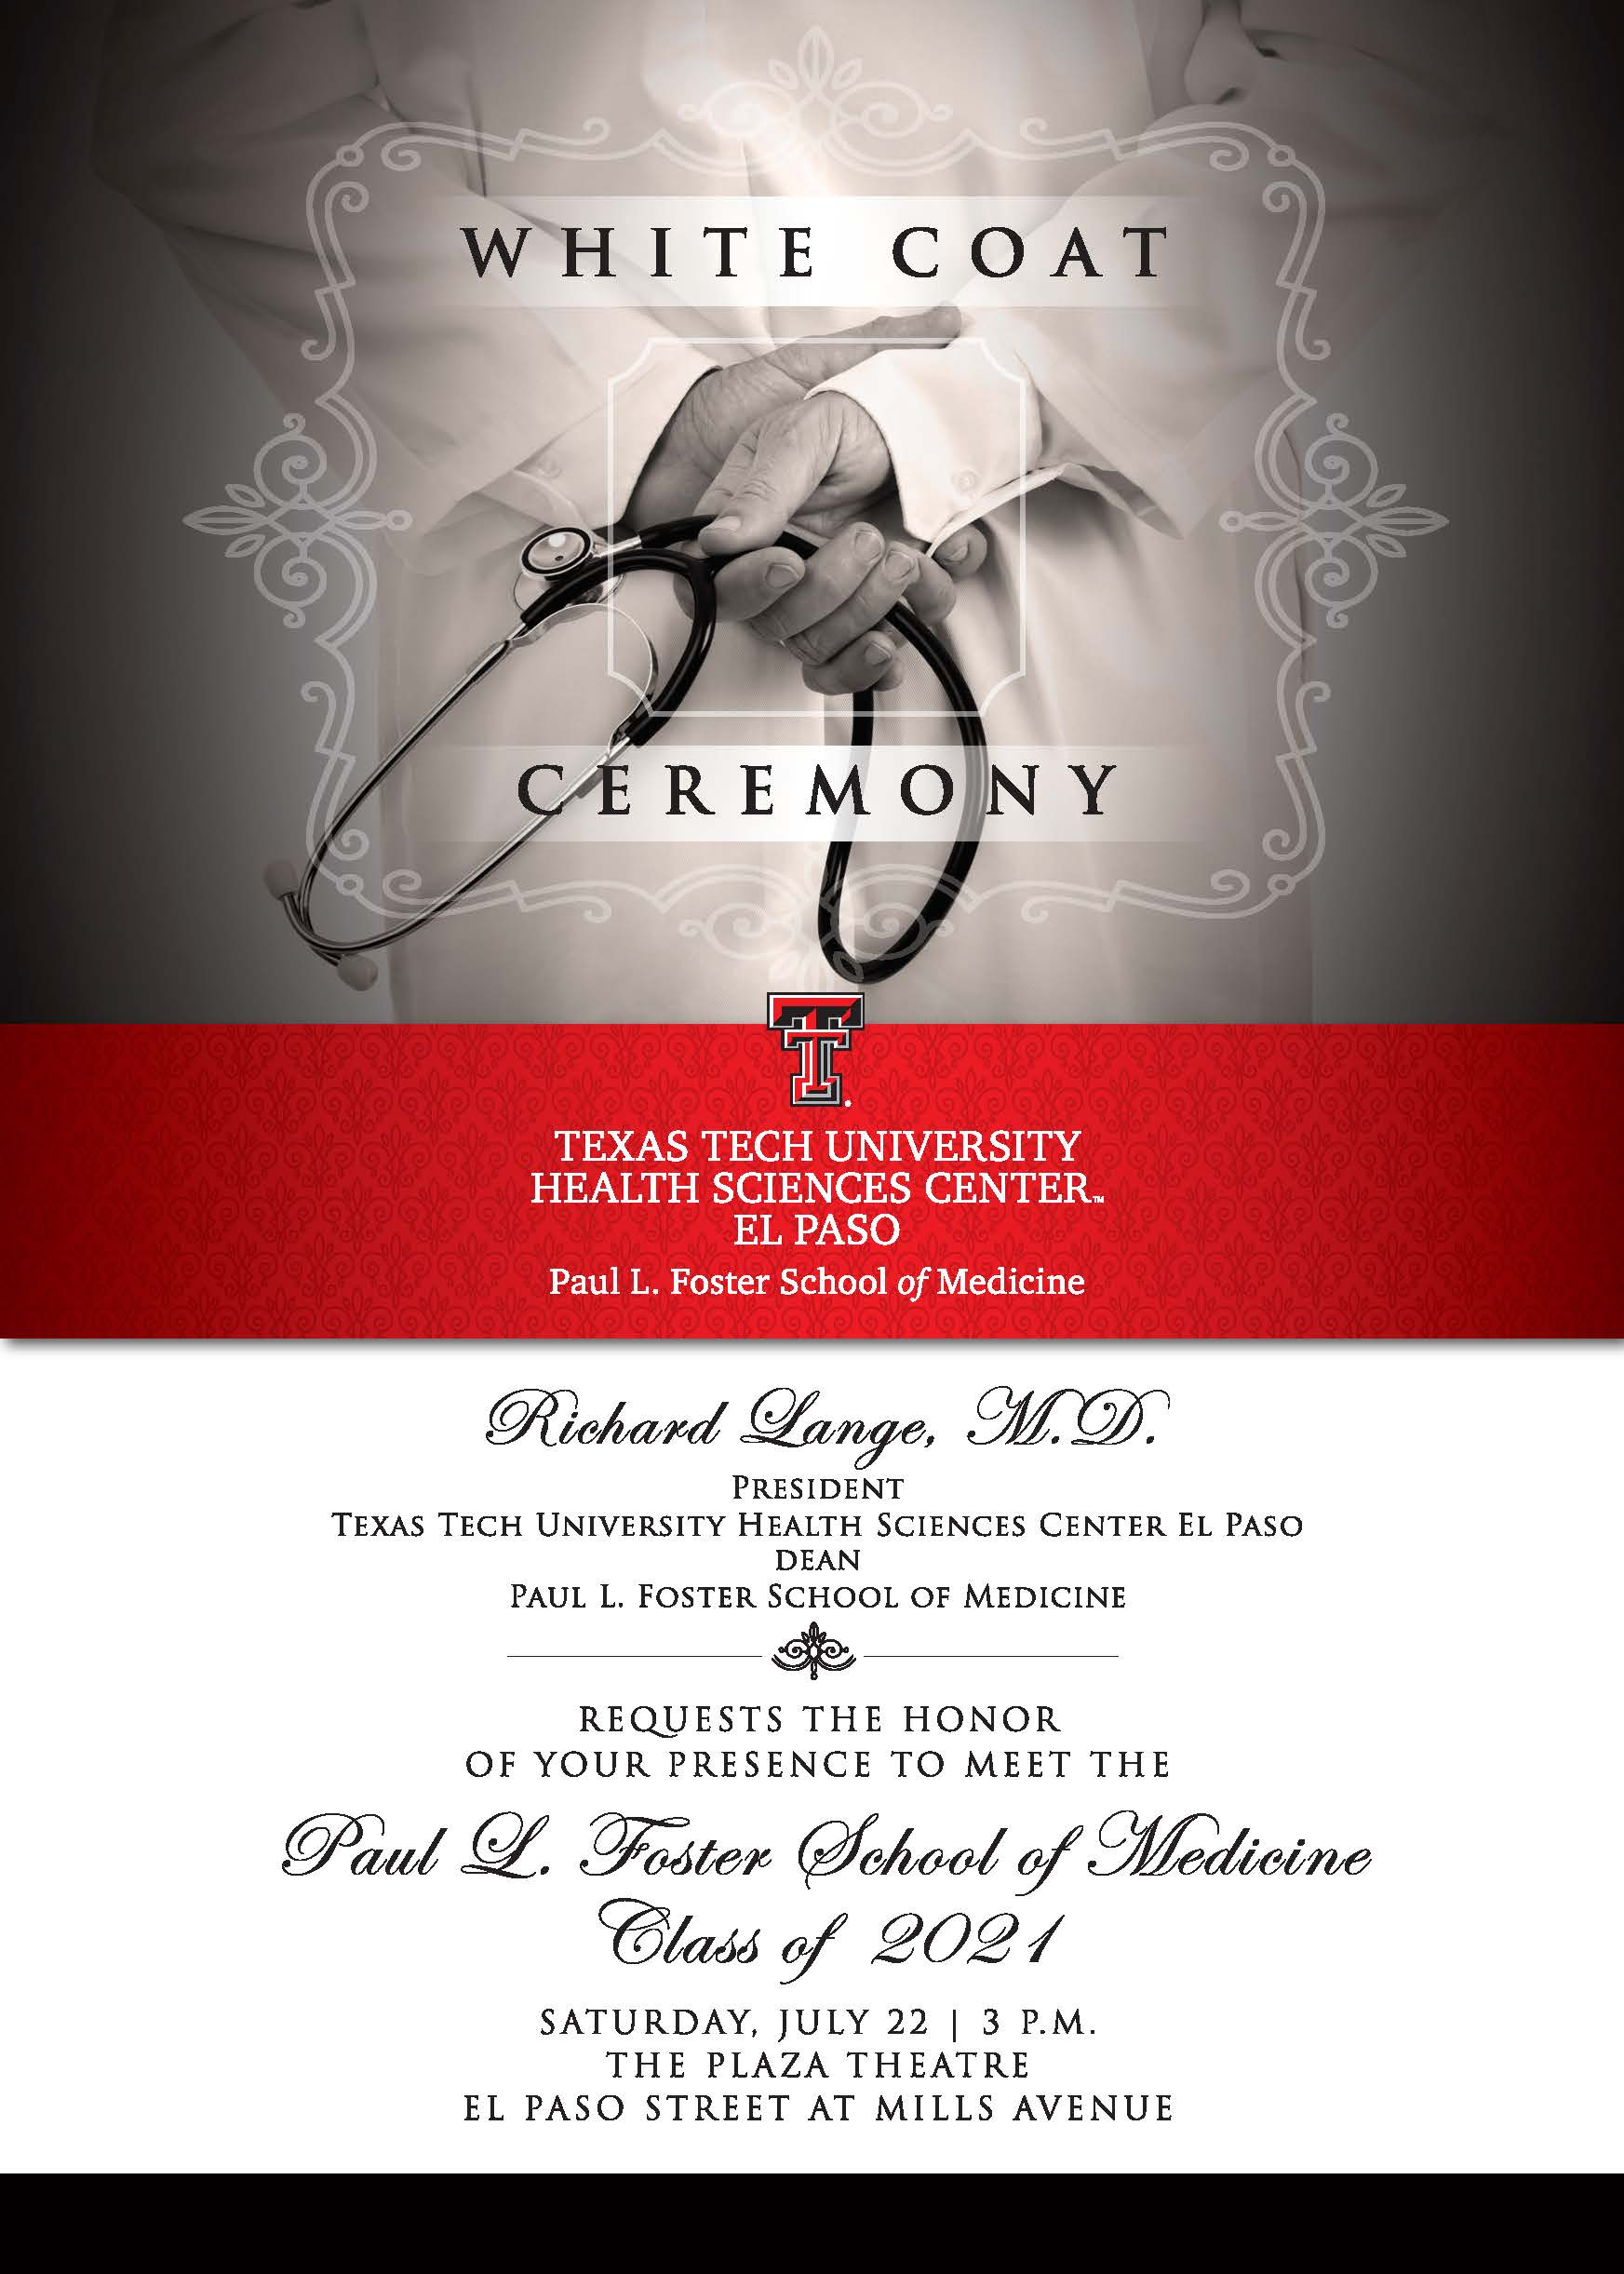 White Coat Ceremony - July 22 intended for Texas Tech Academic Calendar For 2021 -2020